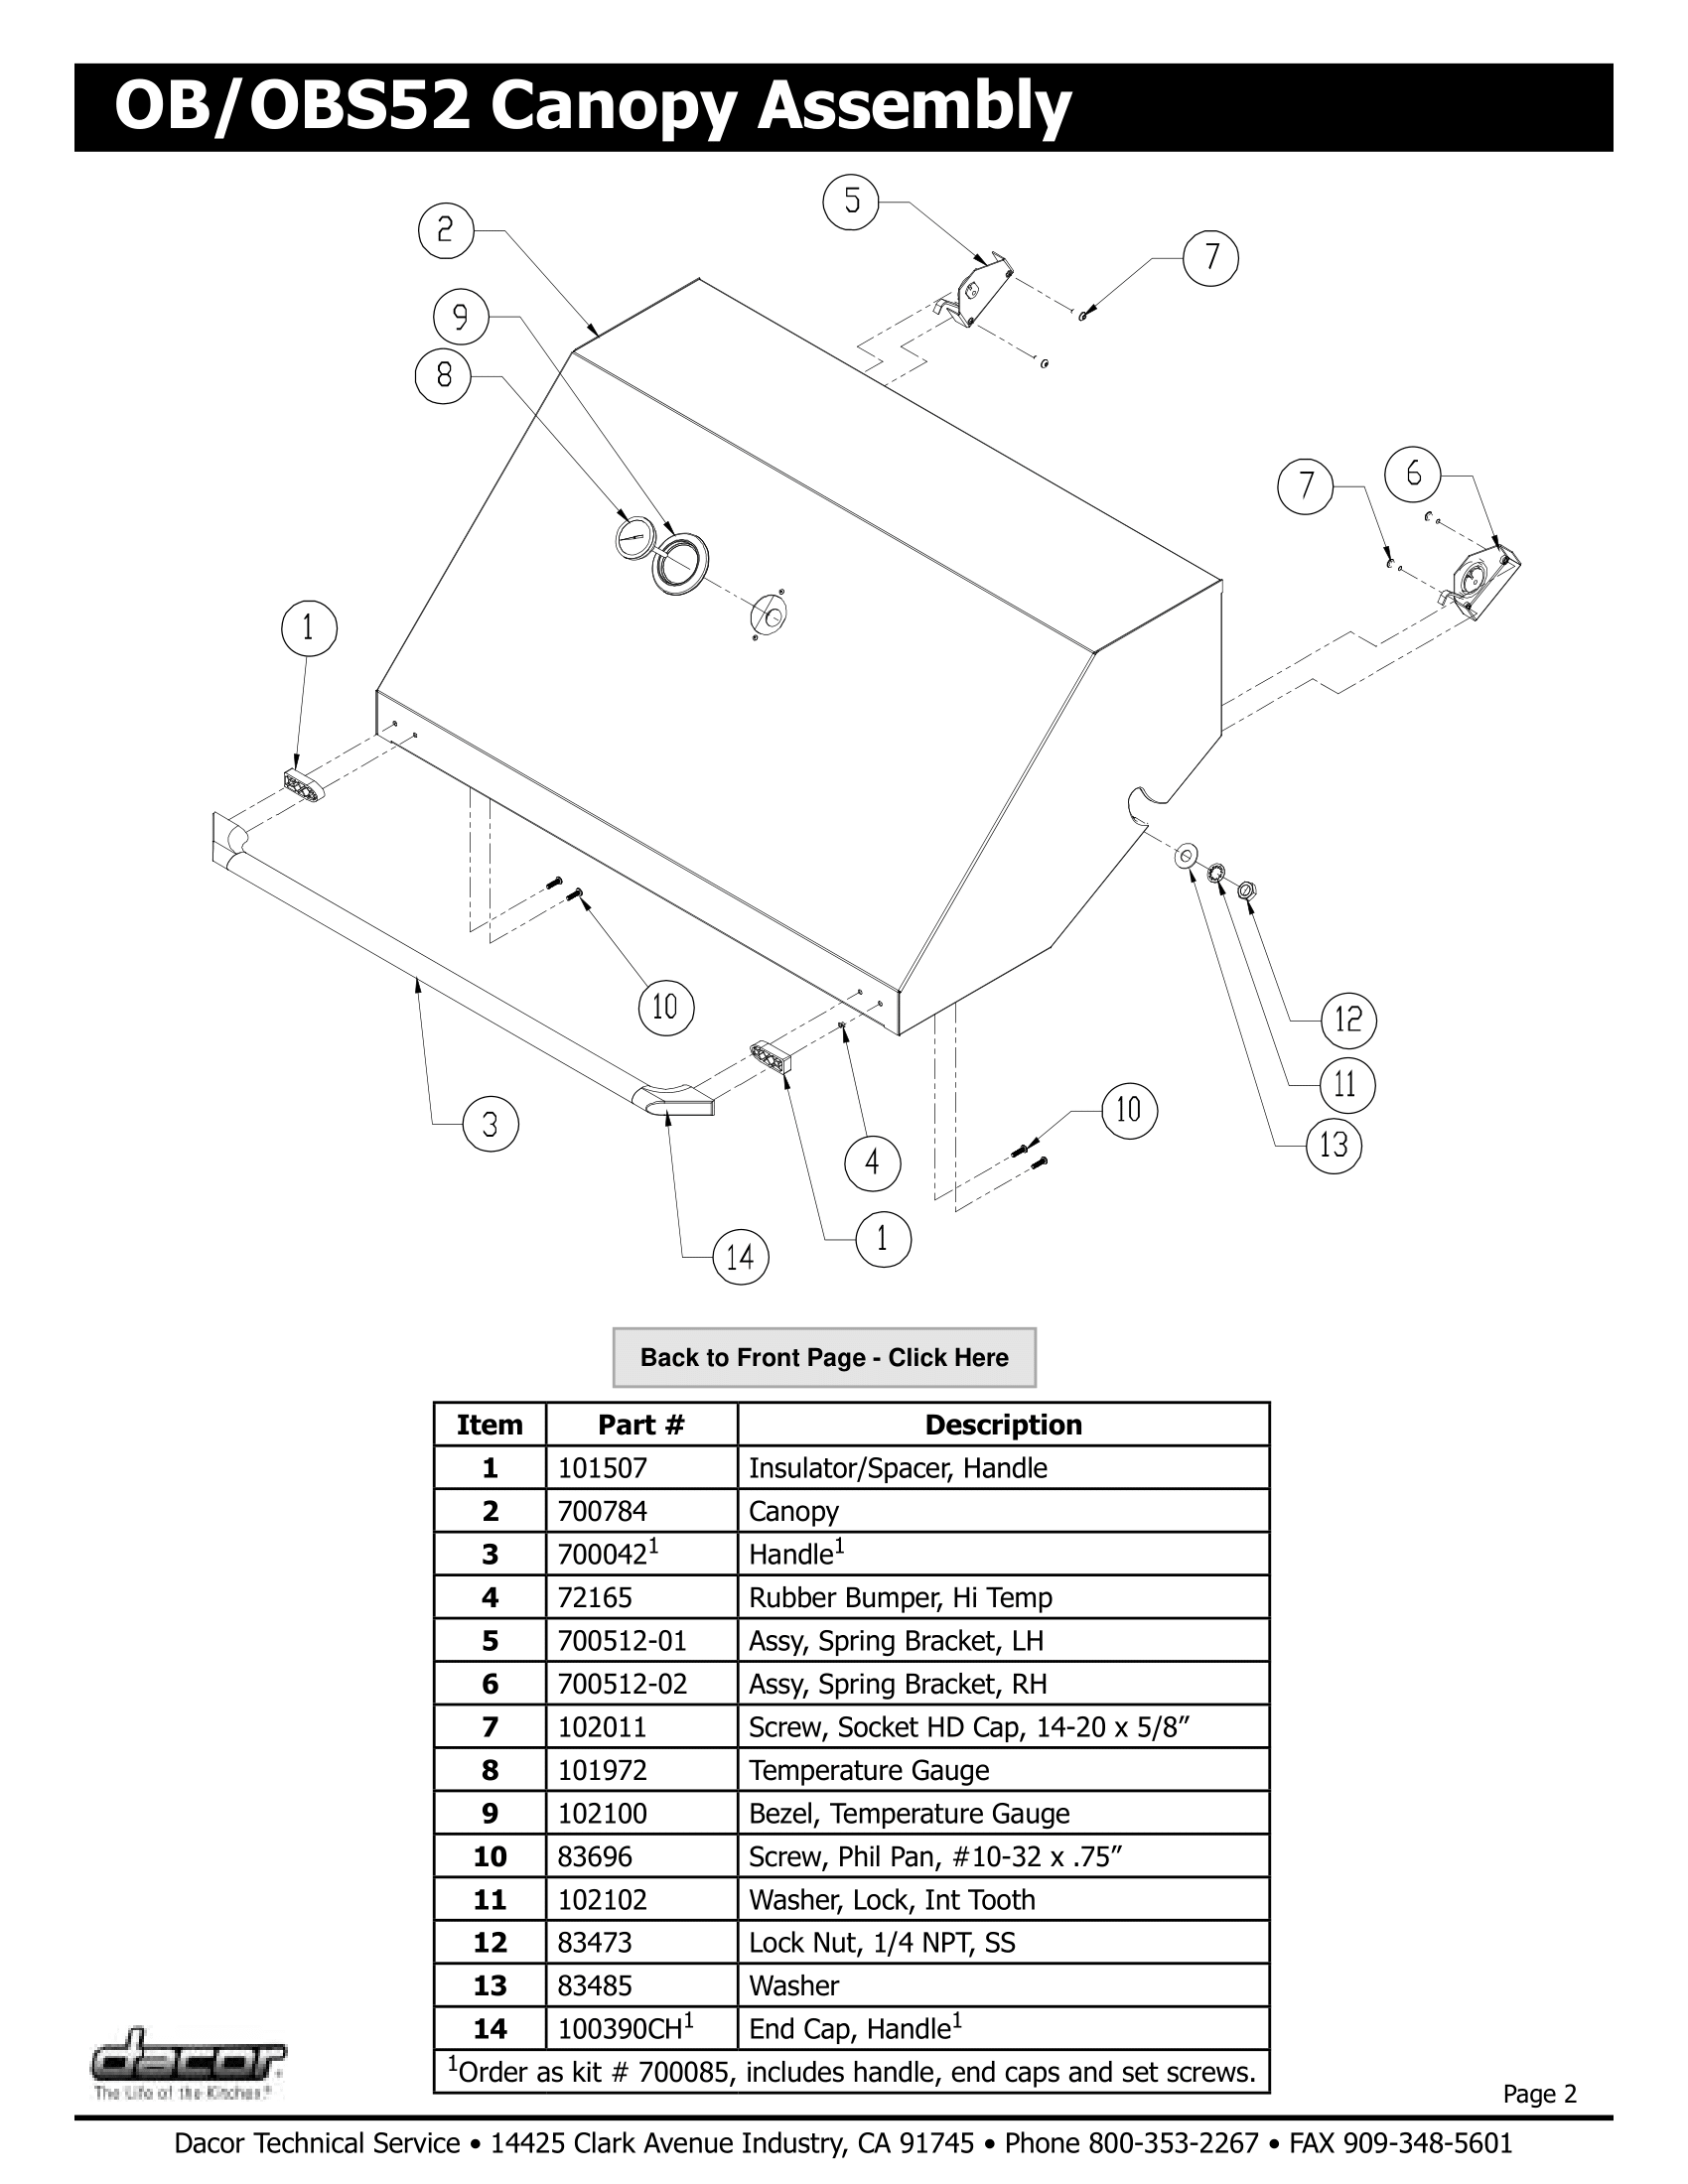 Dacor OB52 Canopy Assembly Schematic